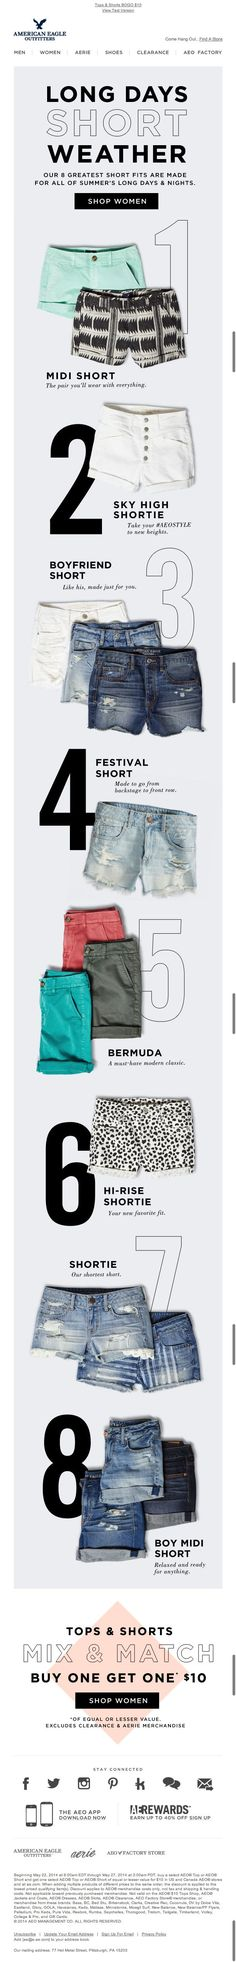 American Eagle fashion Ecommerce Newsletter Ideas Example #email #emailmarketing